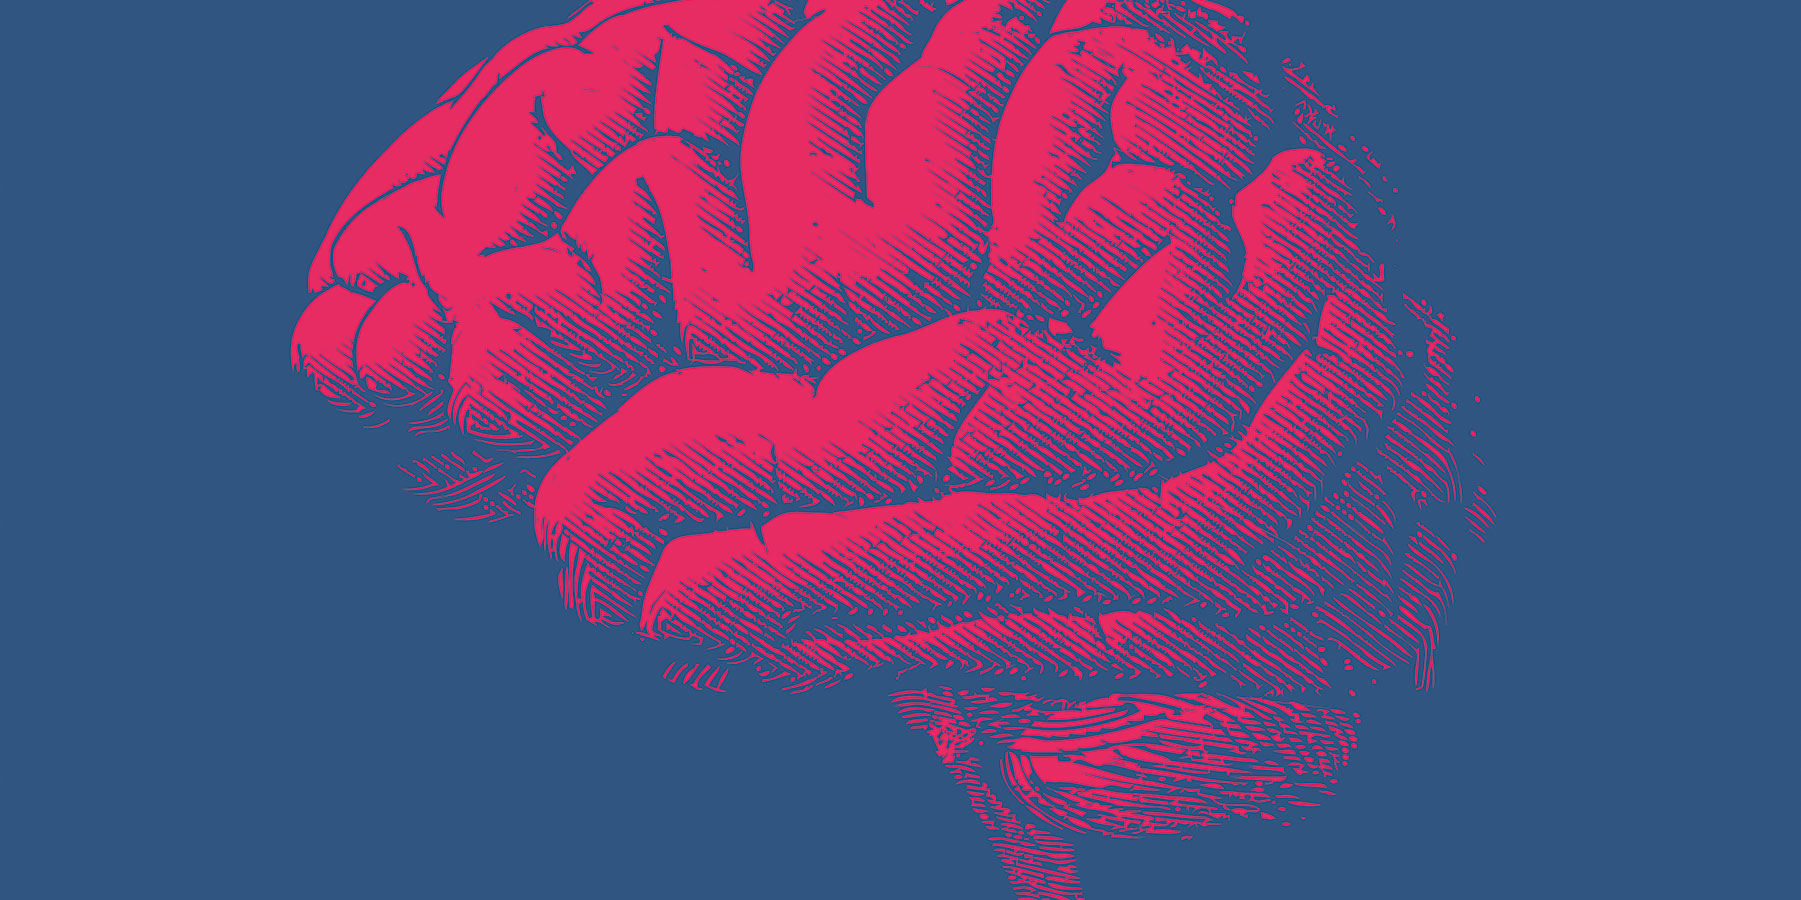 Studying Brain Disorders at the Source